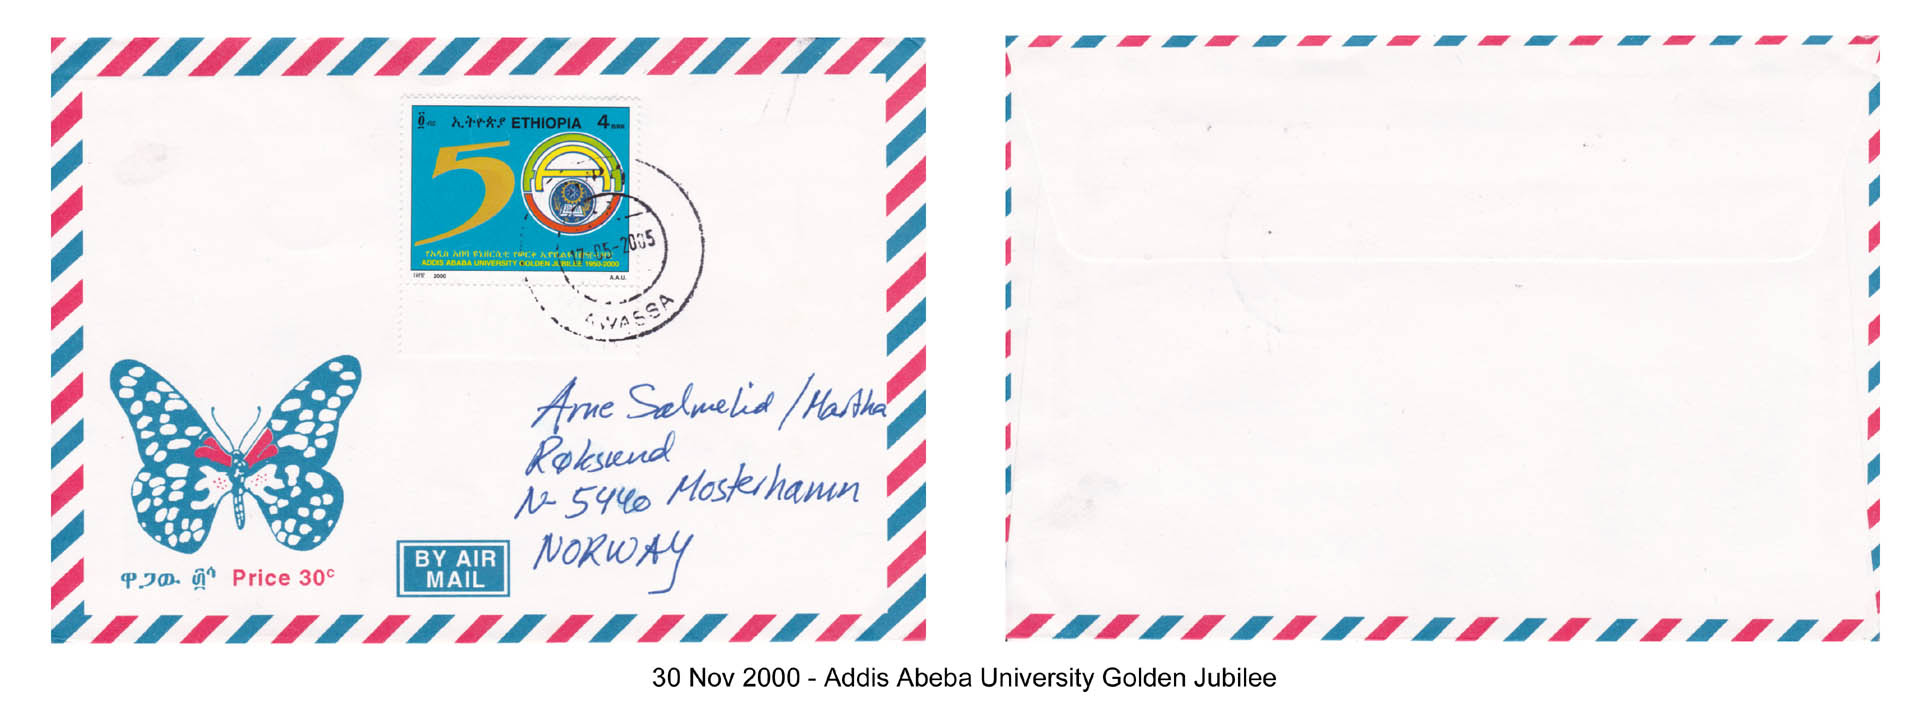 20001130 – Addis Abeba University Golden Jubilee